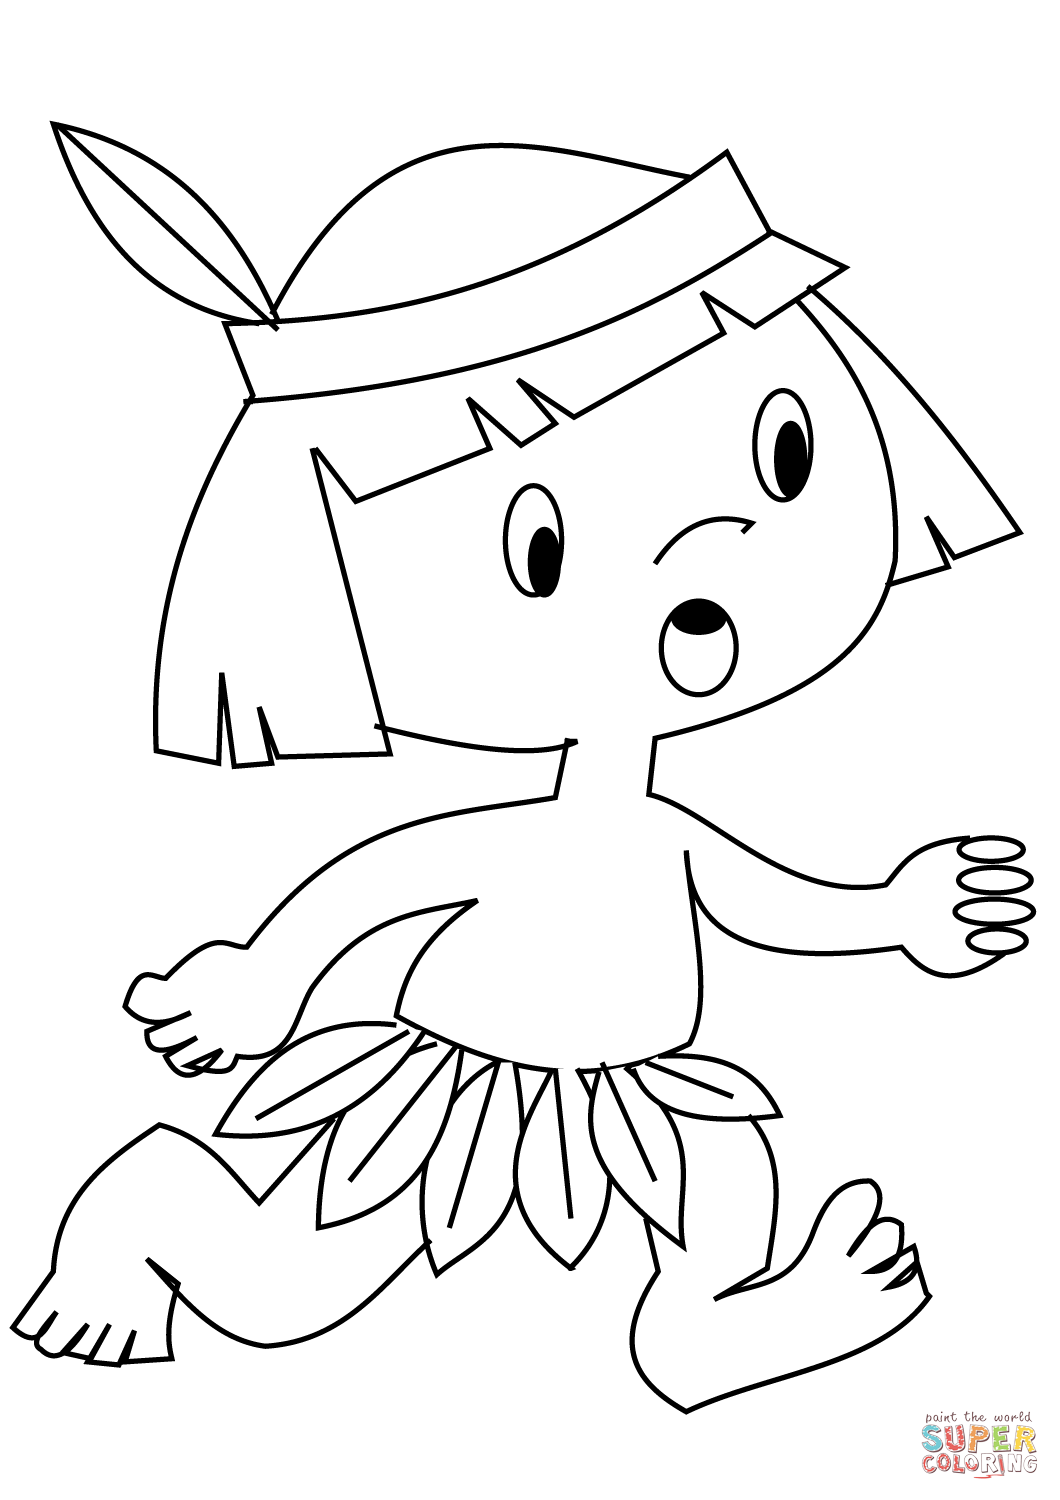 Indian Boy coloring page | Free Printable Coloring Pages